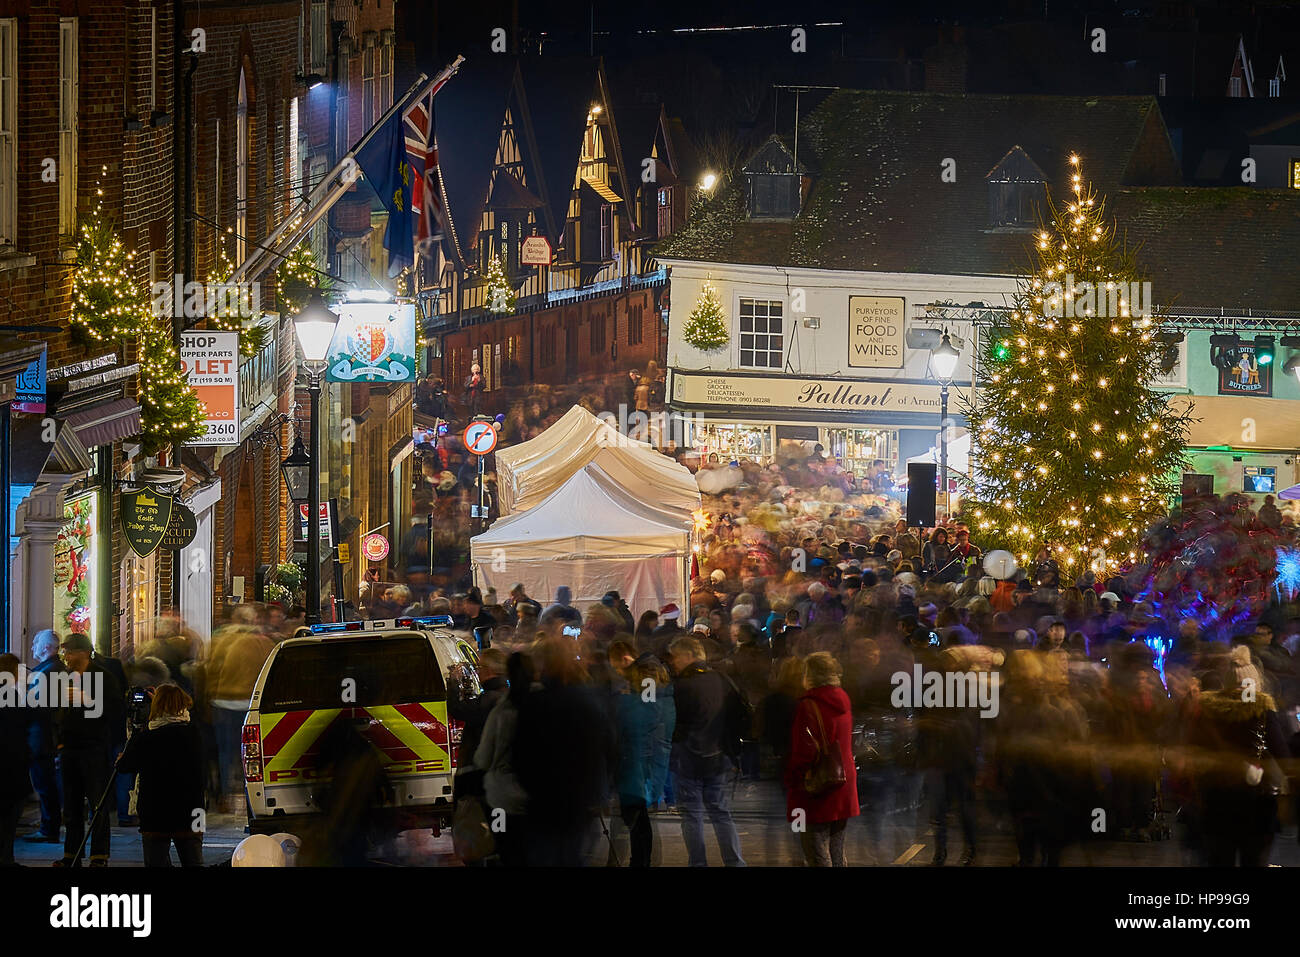 Christmas by Candlelight in Arundel Sussex - Stock Image